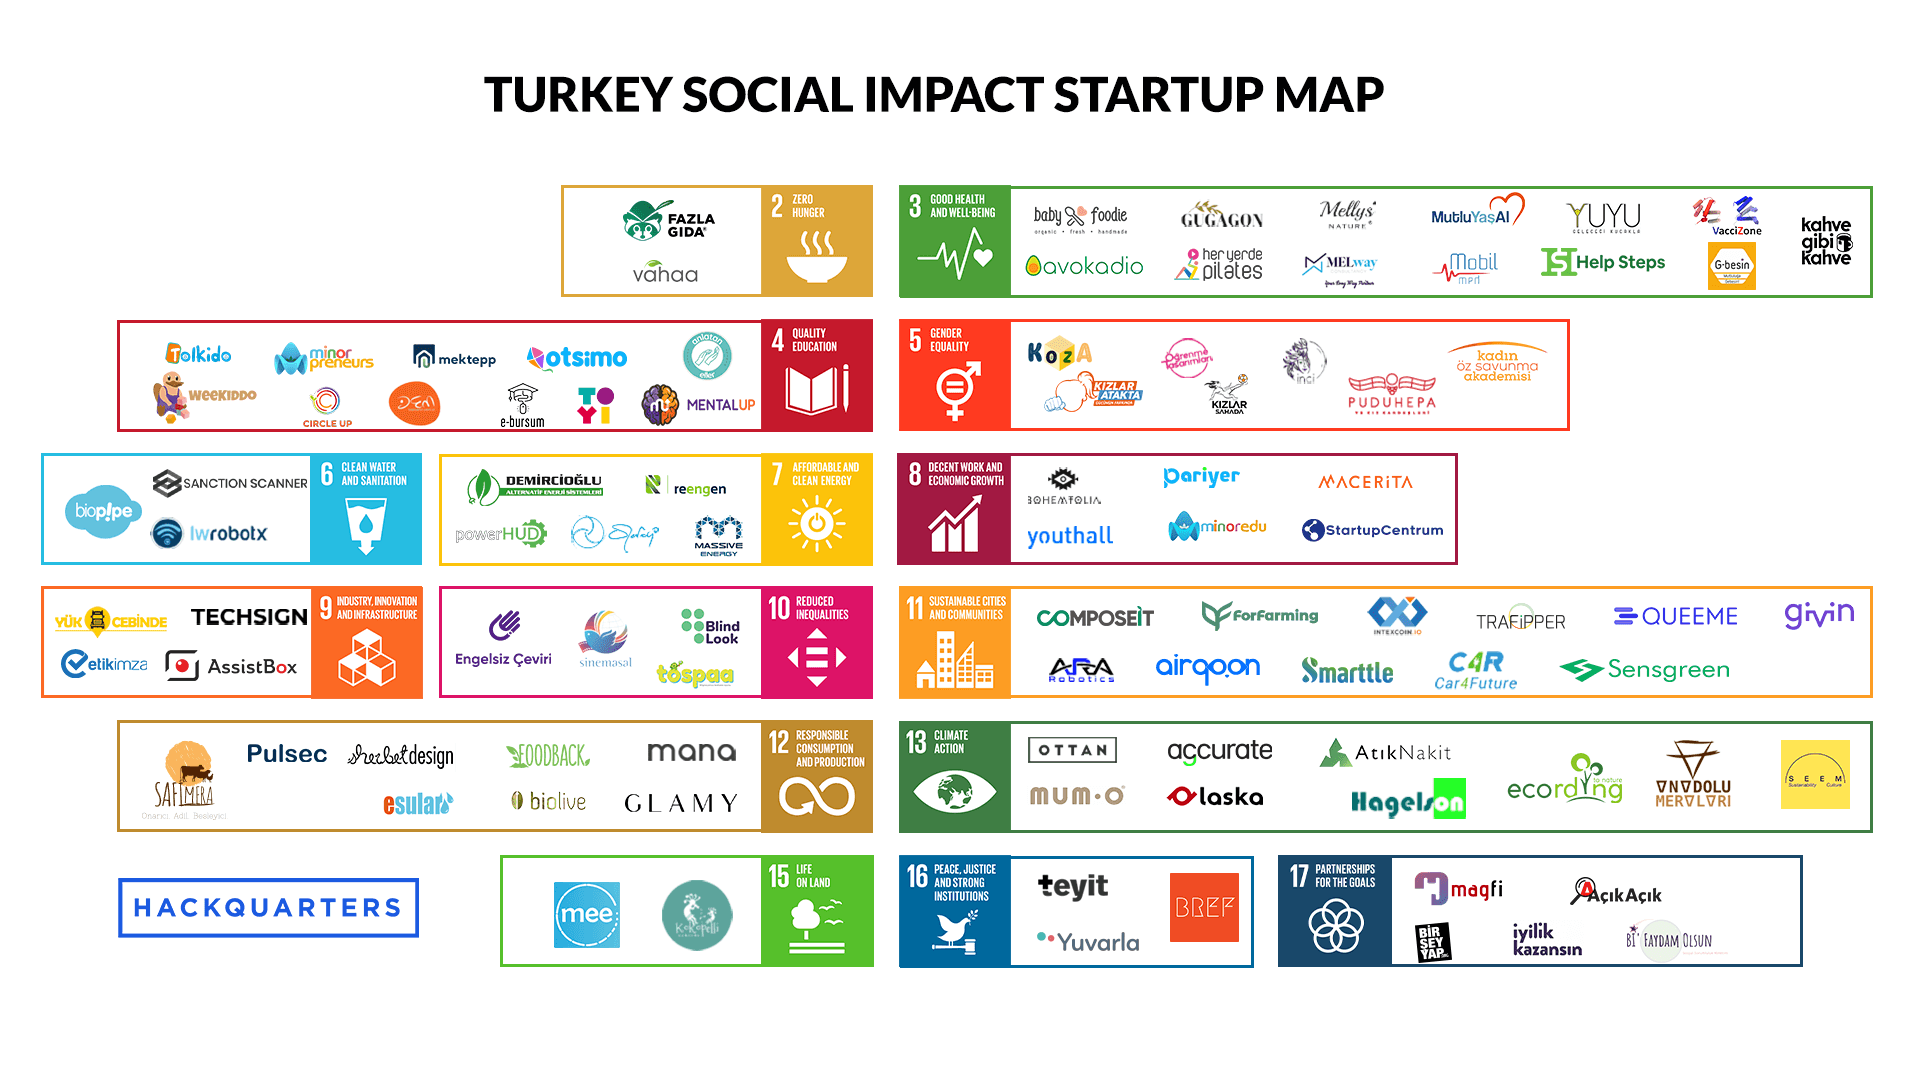 Hackquarters team has compiled a Map of Social Startups with companies categorized according to the goal they are contributing to